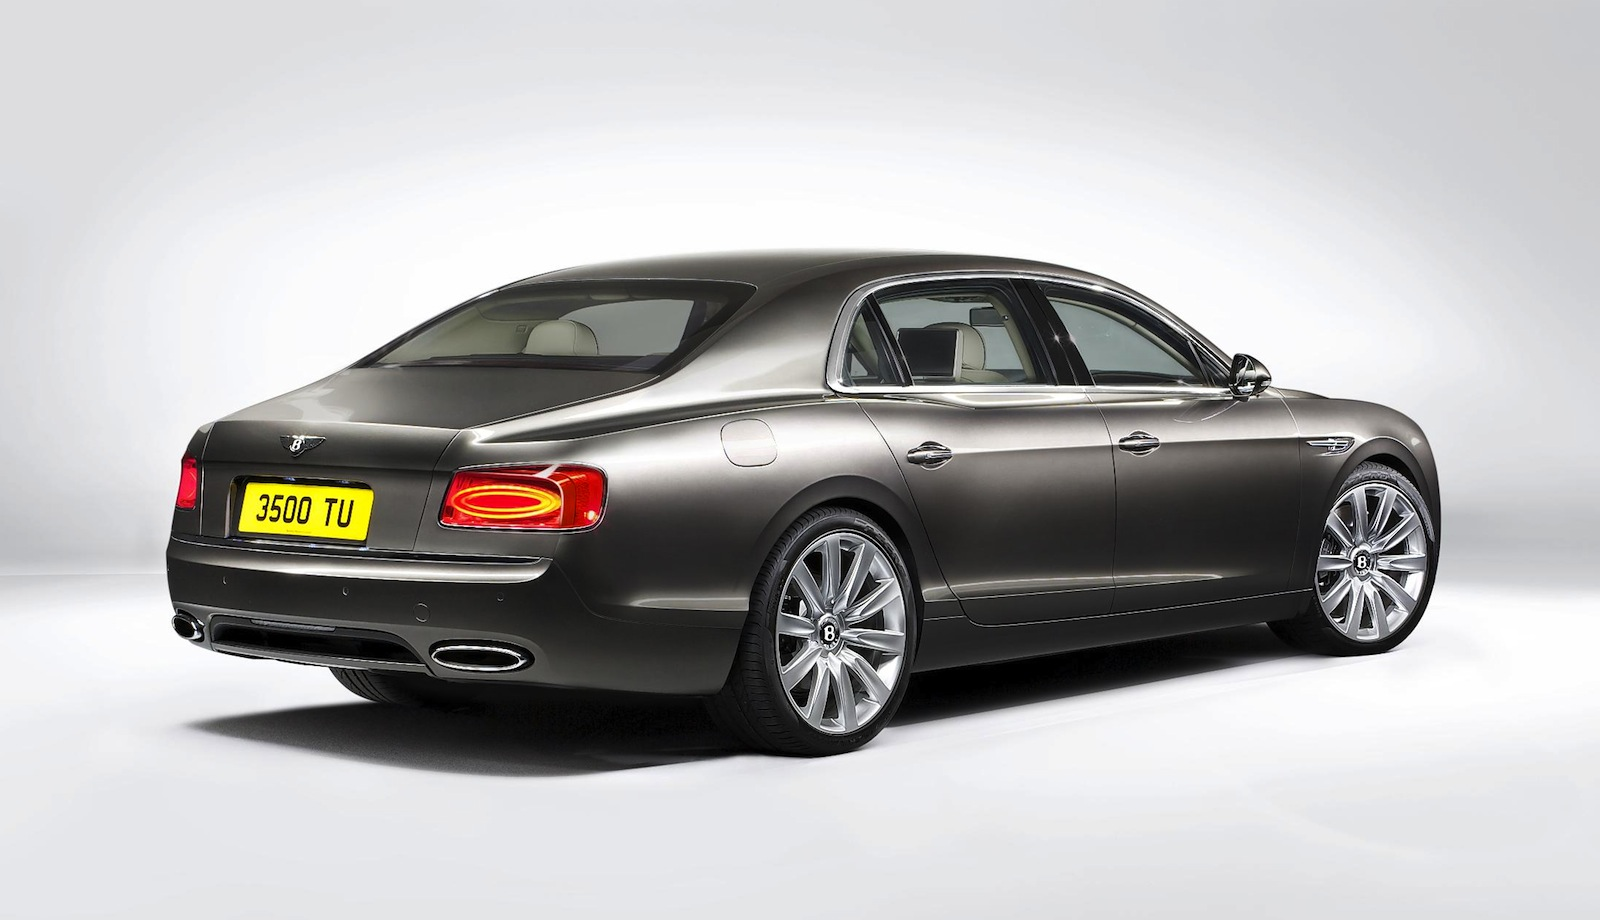 Bmw London Ontario >> Bentley Continental Flying Spur | - Your source for exotic car information, rentals, purchases ...